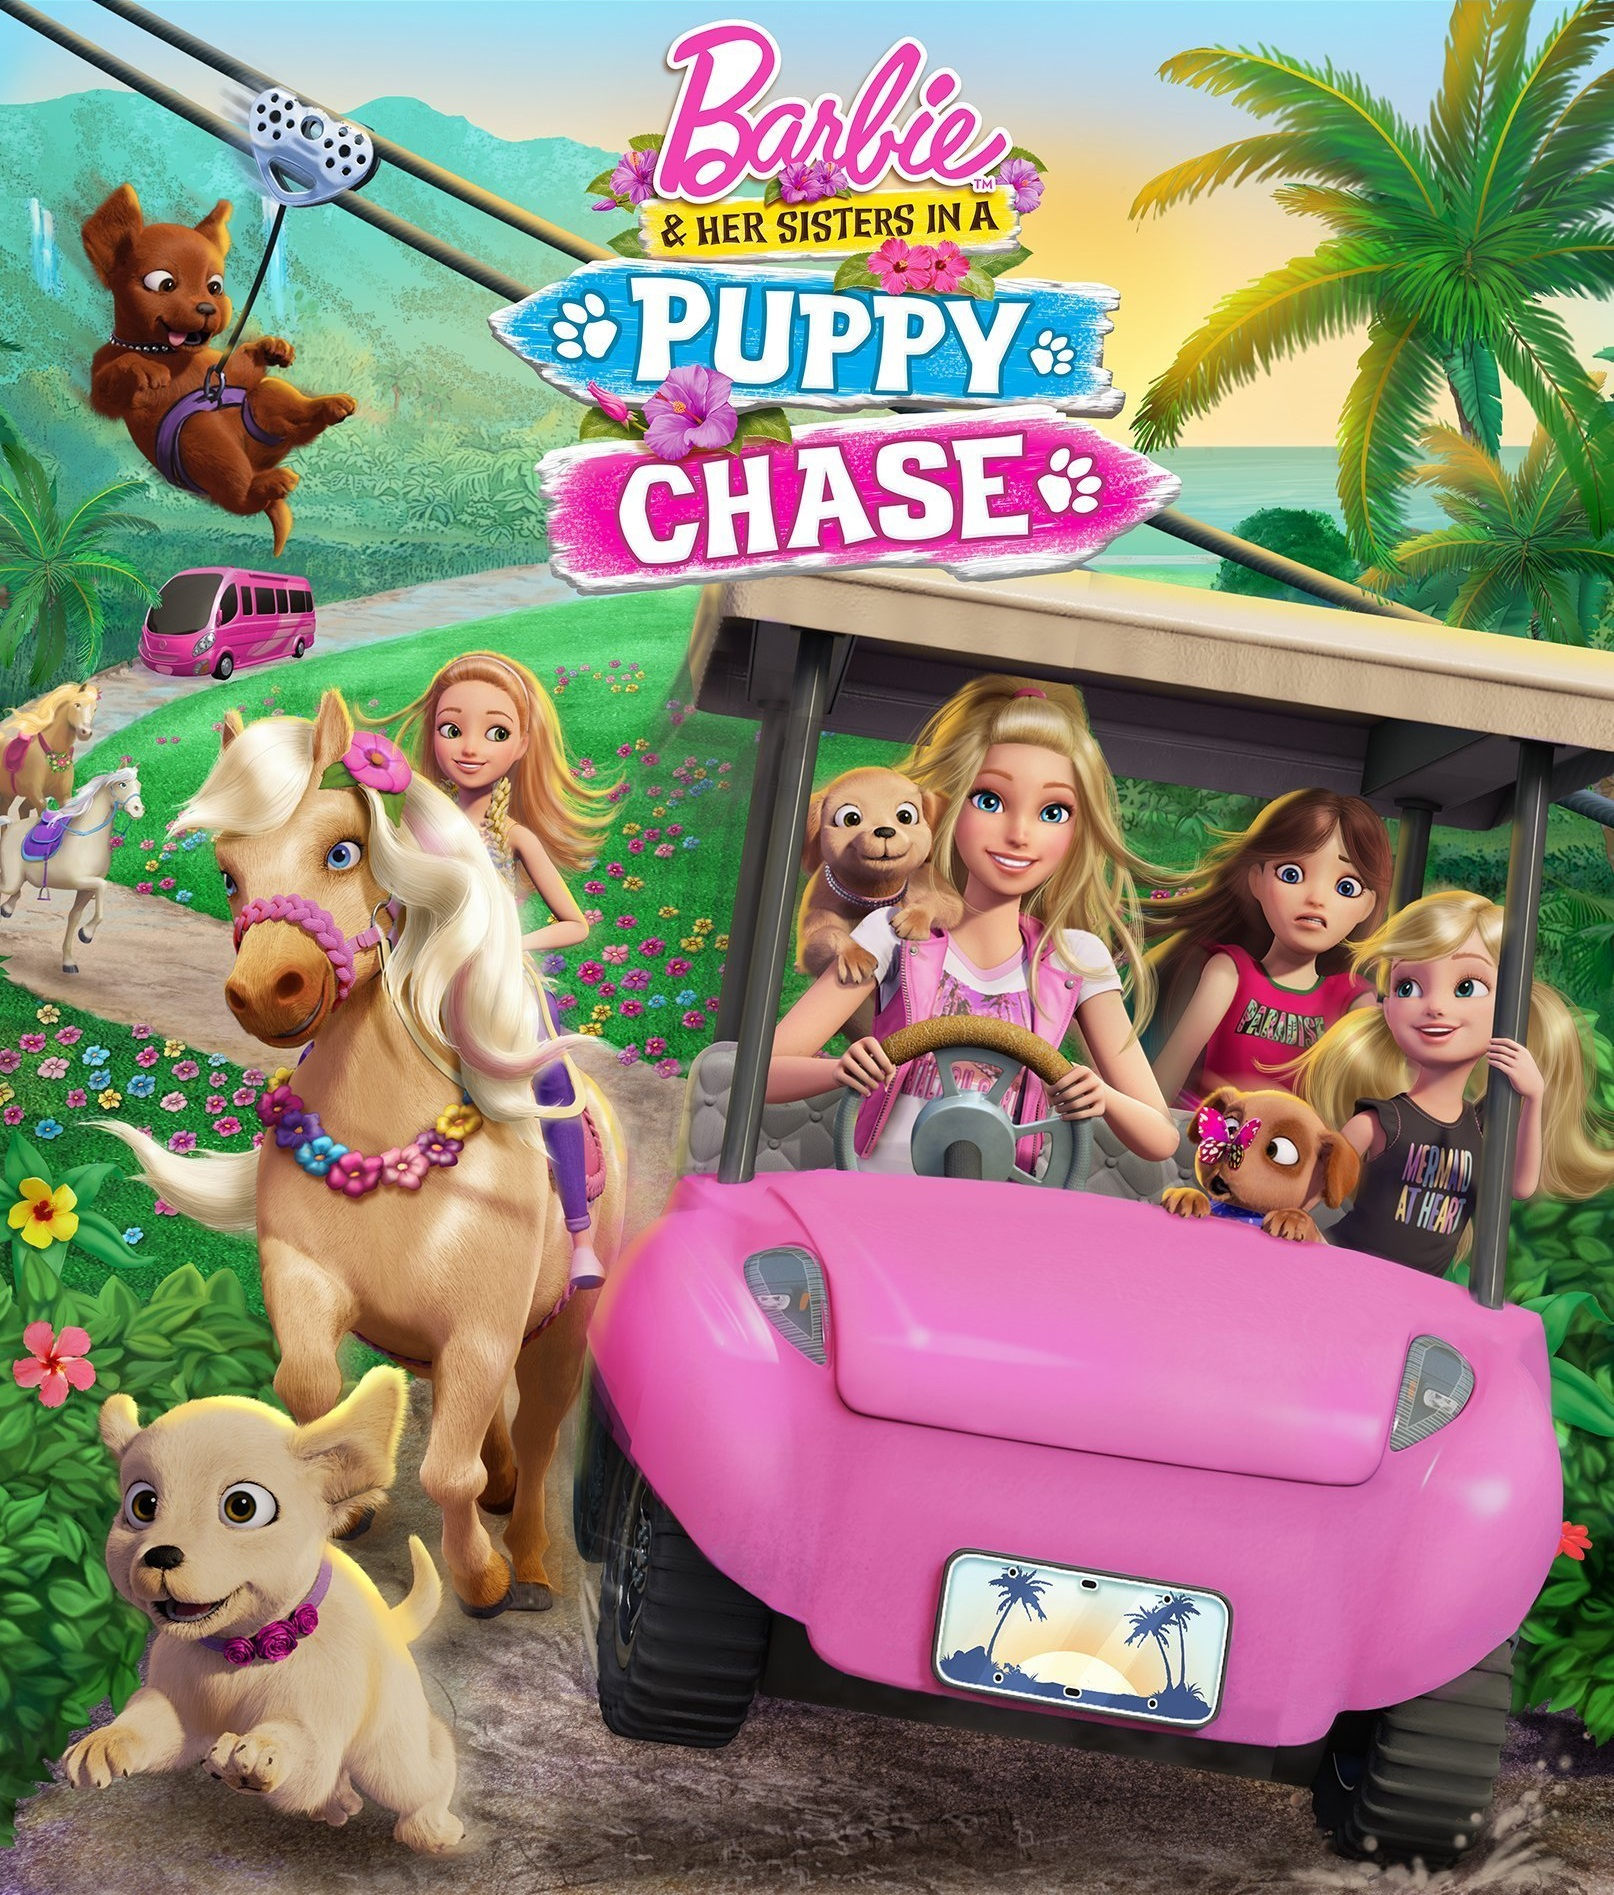 Barbie_and_Her_Sisters_in_a_Puppy_Chase.jpg